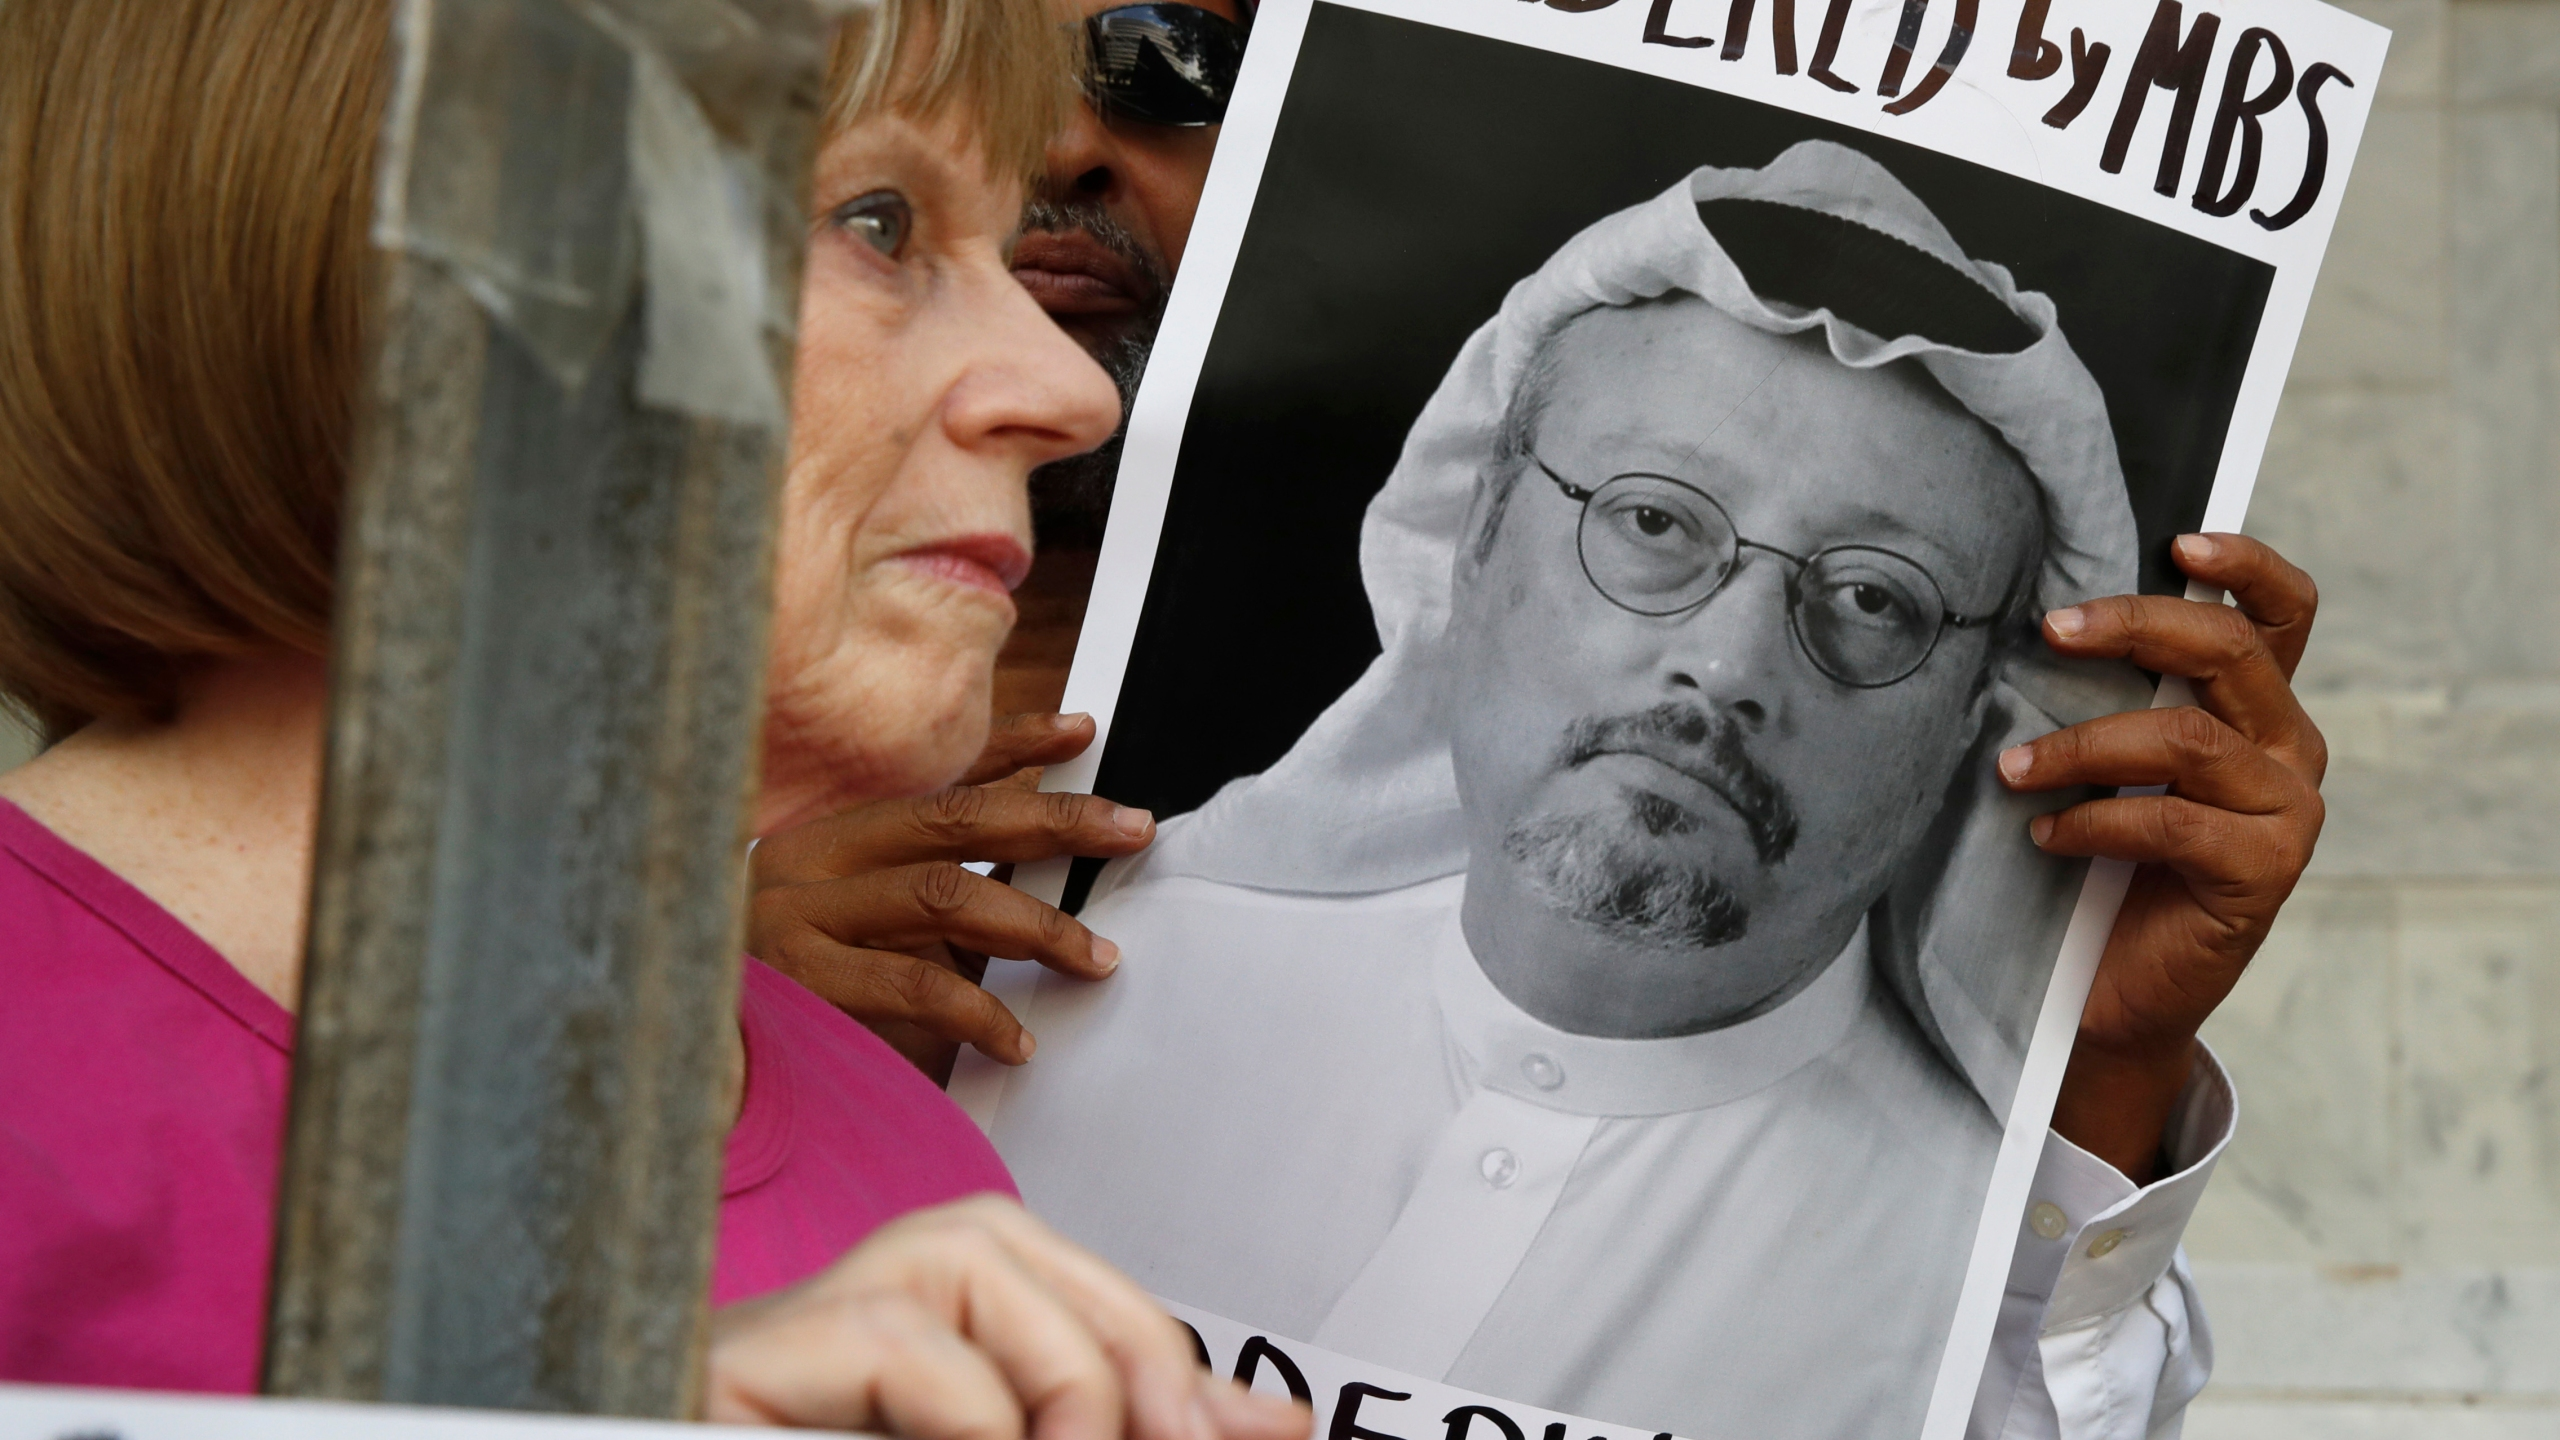 Saudi_Arabia_Missing_Writer_03571-159532.jpg55336221